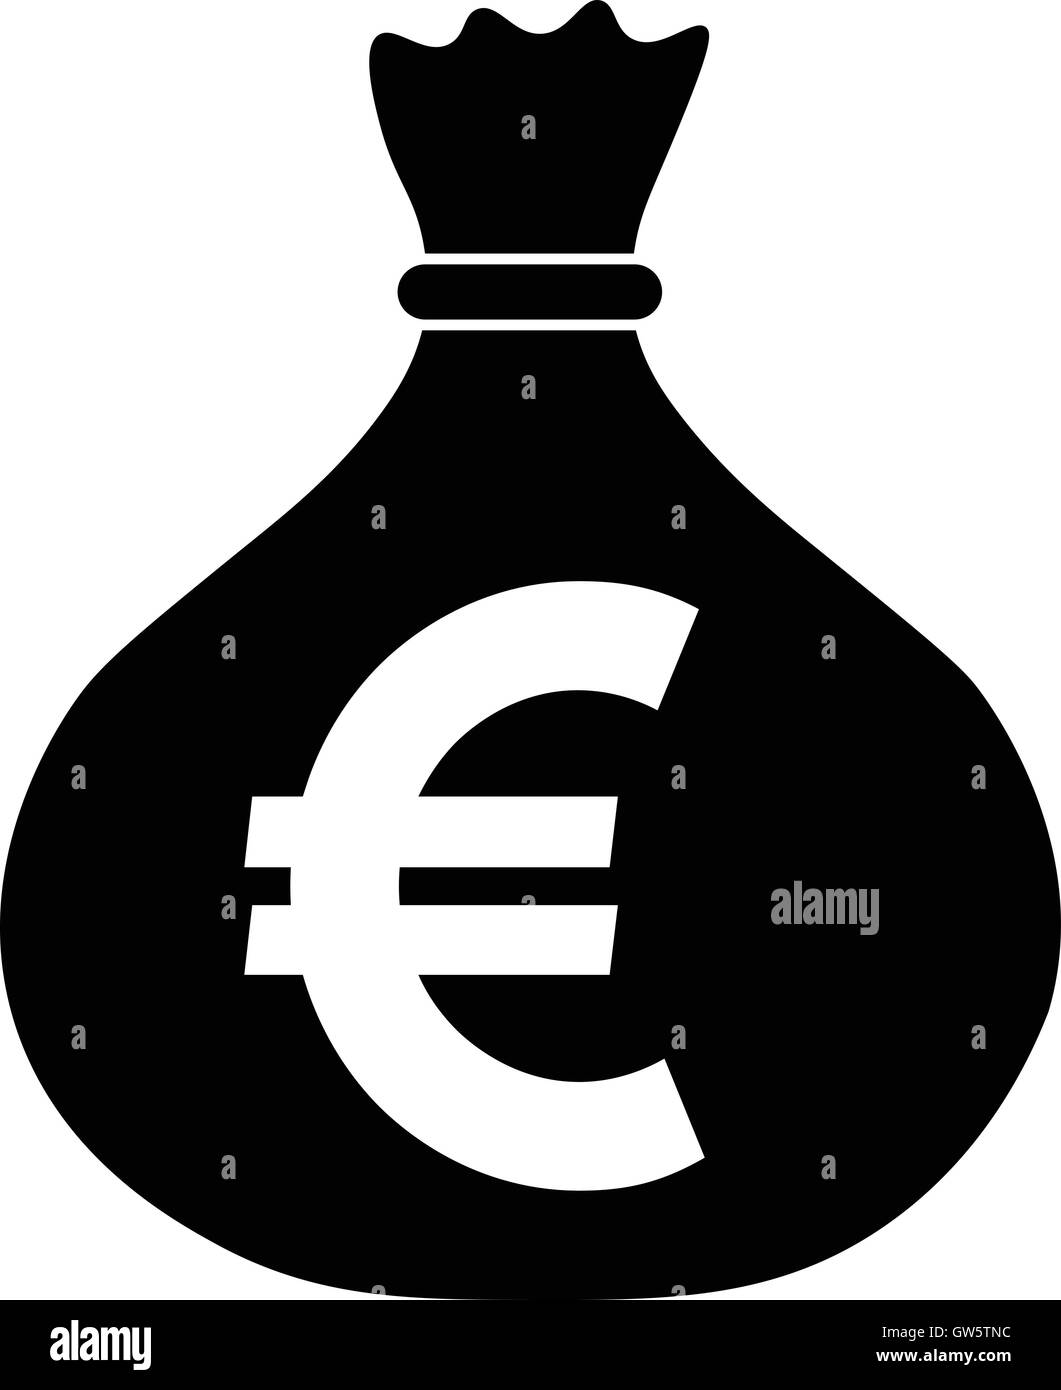 Money bag icon with euro symbol eur currency symbol vector stock money bag icon with euro symbol eur currency symbol vector illustration buycottarizona Choice Image